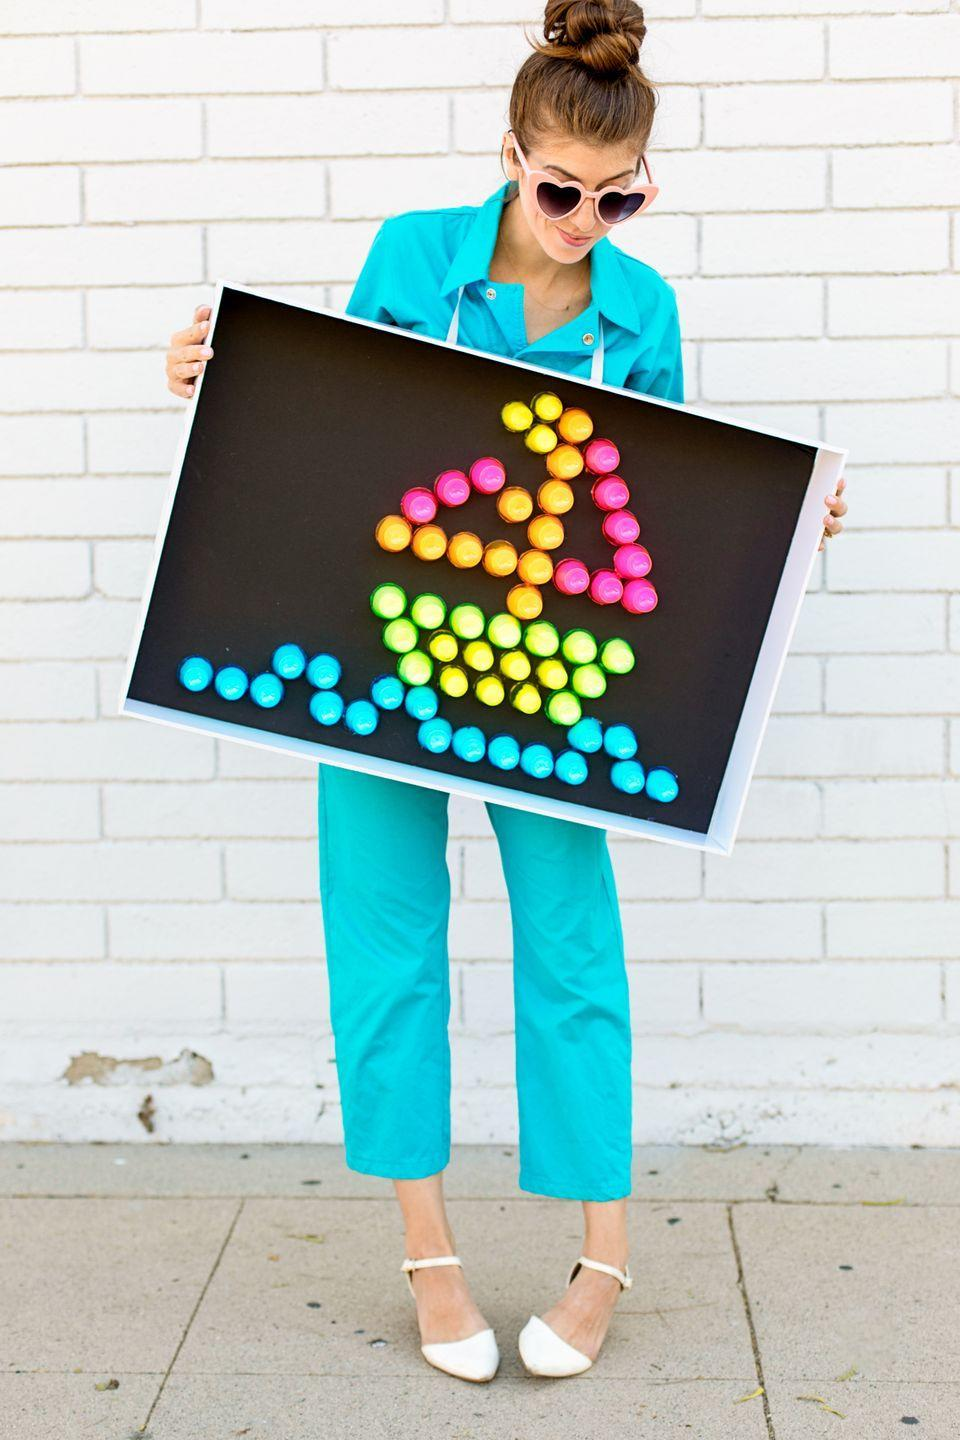 """<p>Shine bright this Halloween when you pay tribute to one of the all-time greatest '80s toys. This clever tutorial teaches you how to make a Lite-Brite costume out of neon plastic shot glasses and one secret household ingredient. </p><p><strong>See more at <a href=""""https://studiodiy.com/diy-lite-brite-costume/"""" rel=""""nofollow noopener"""" target=""""_blank"""" data-ylk=""""slk:Studio DIY!"""" class=""""link rapid-noclick-resp"""">Studio DIY!</a>.</strong></p><p><strong><a class=""""link rapid-noclick-resp"""" href=""""https://go.redirectingat.com?id=74968X1596630&url=https%3A%2F%2Fwww.walmart.com%2Fip%2F1-Party-Essentials-2-Oz-Plastic-Shot-Glasses-Assorted-Neons-Box-Set-60-ct%2F25574913&sref=https%3A%2F%2Fwww.thepioneerwoman.com%2Fholidays-celebrations%2Fg32645069%2F80s-halloween-costumes%2F"""" rel=""""nofollow noopener"""" target=""""_blank"""" data-ylk=""""slk:SHOP SHOT GLASSES"""">SHOP SHOT GLASSES</a></strong> </p>"""